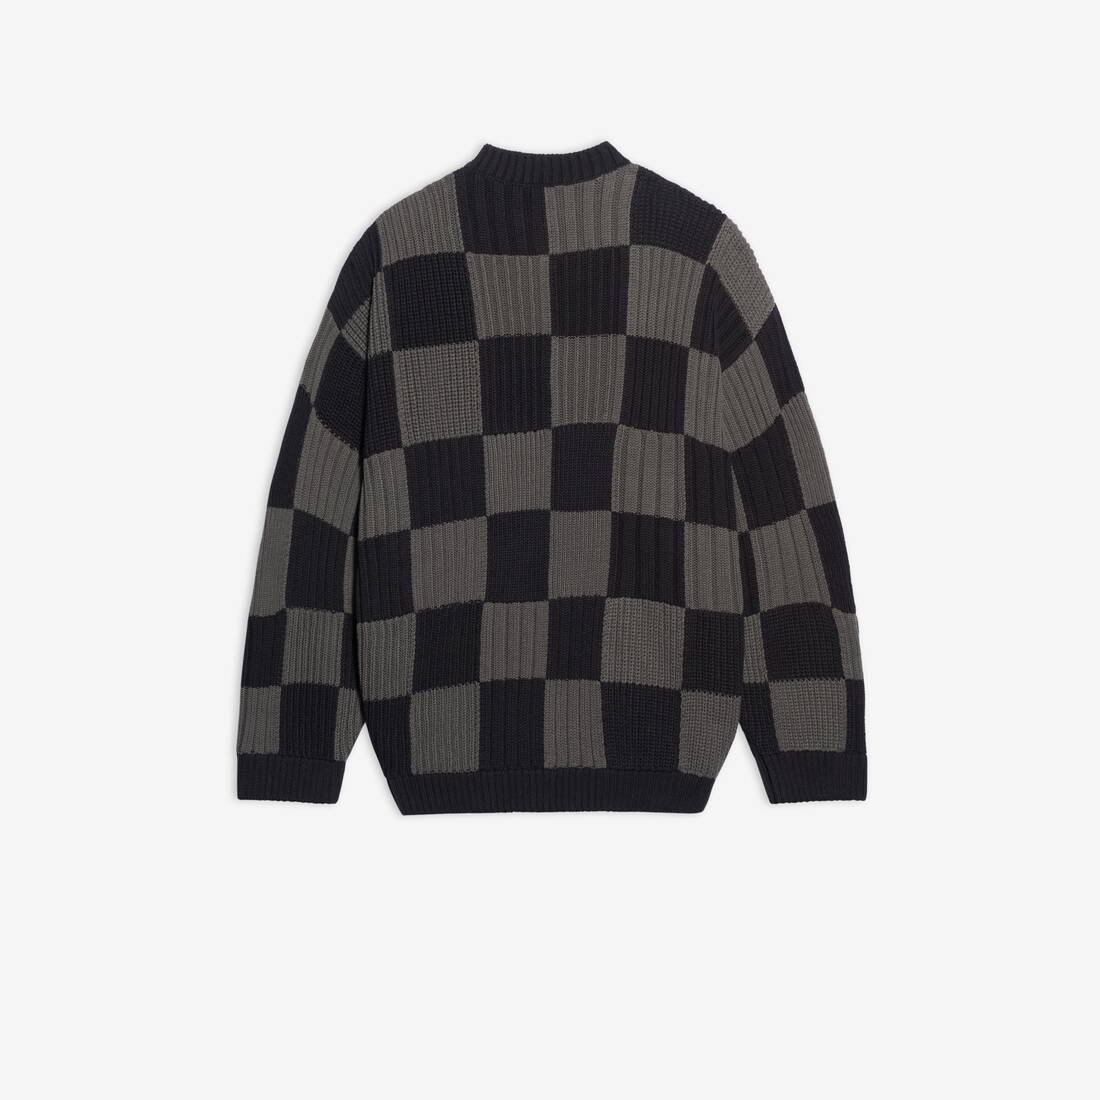 Display zoomed version of checkered crewneck 2